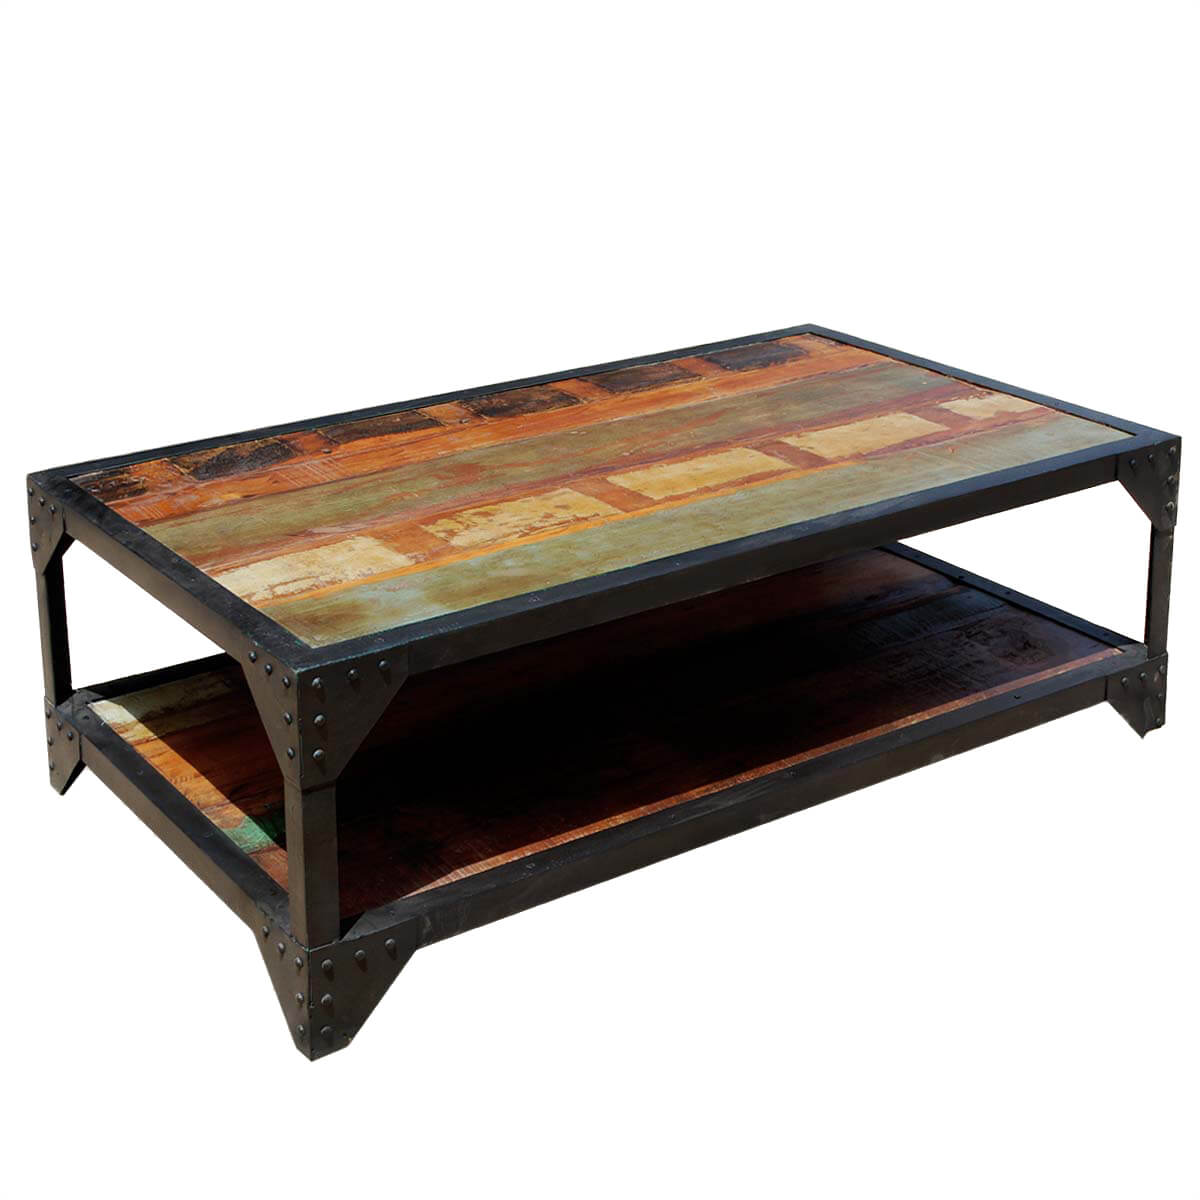 Big Round Reclaimed Wood Coffee Table 2 Sizes: Molino Reclaimed Wood 2 Tier Wrought Iron Industrial